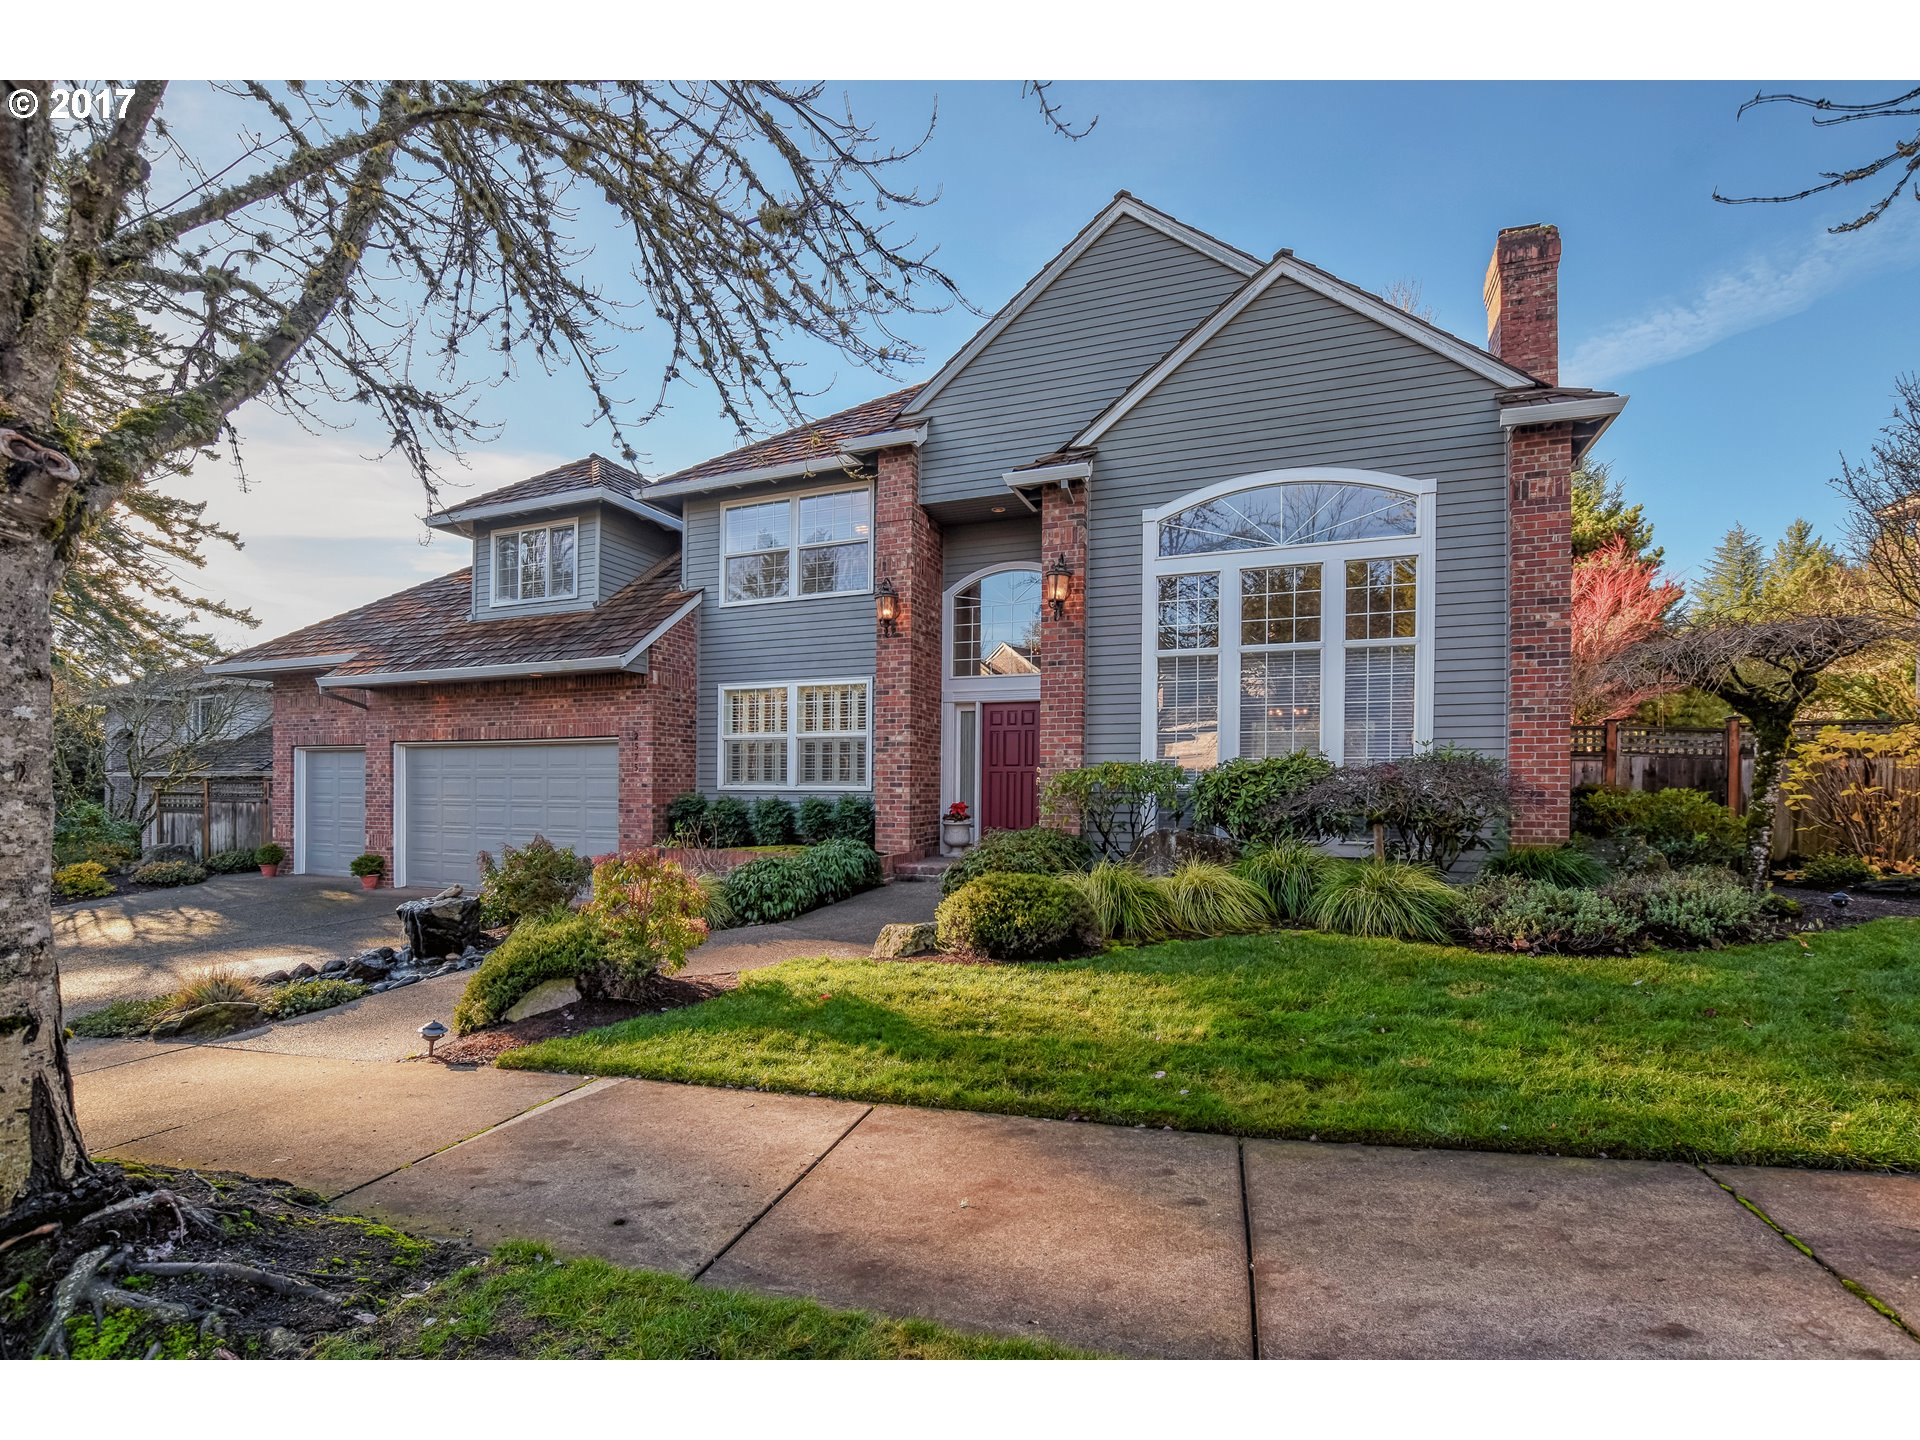 2575 BEACON HILL DR, West Linn, OR 97068